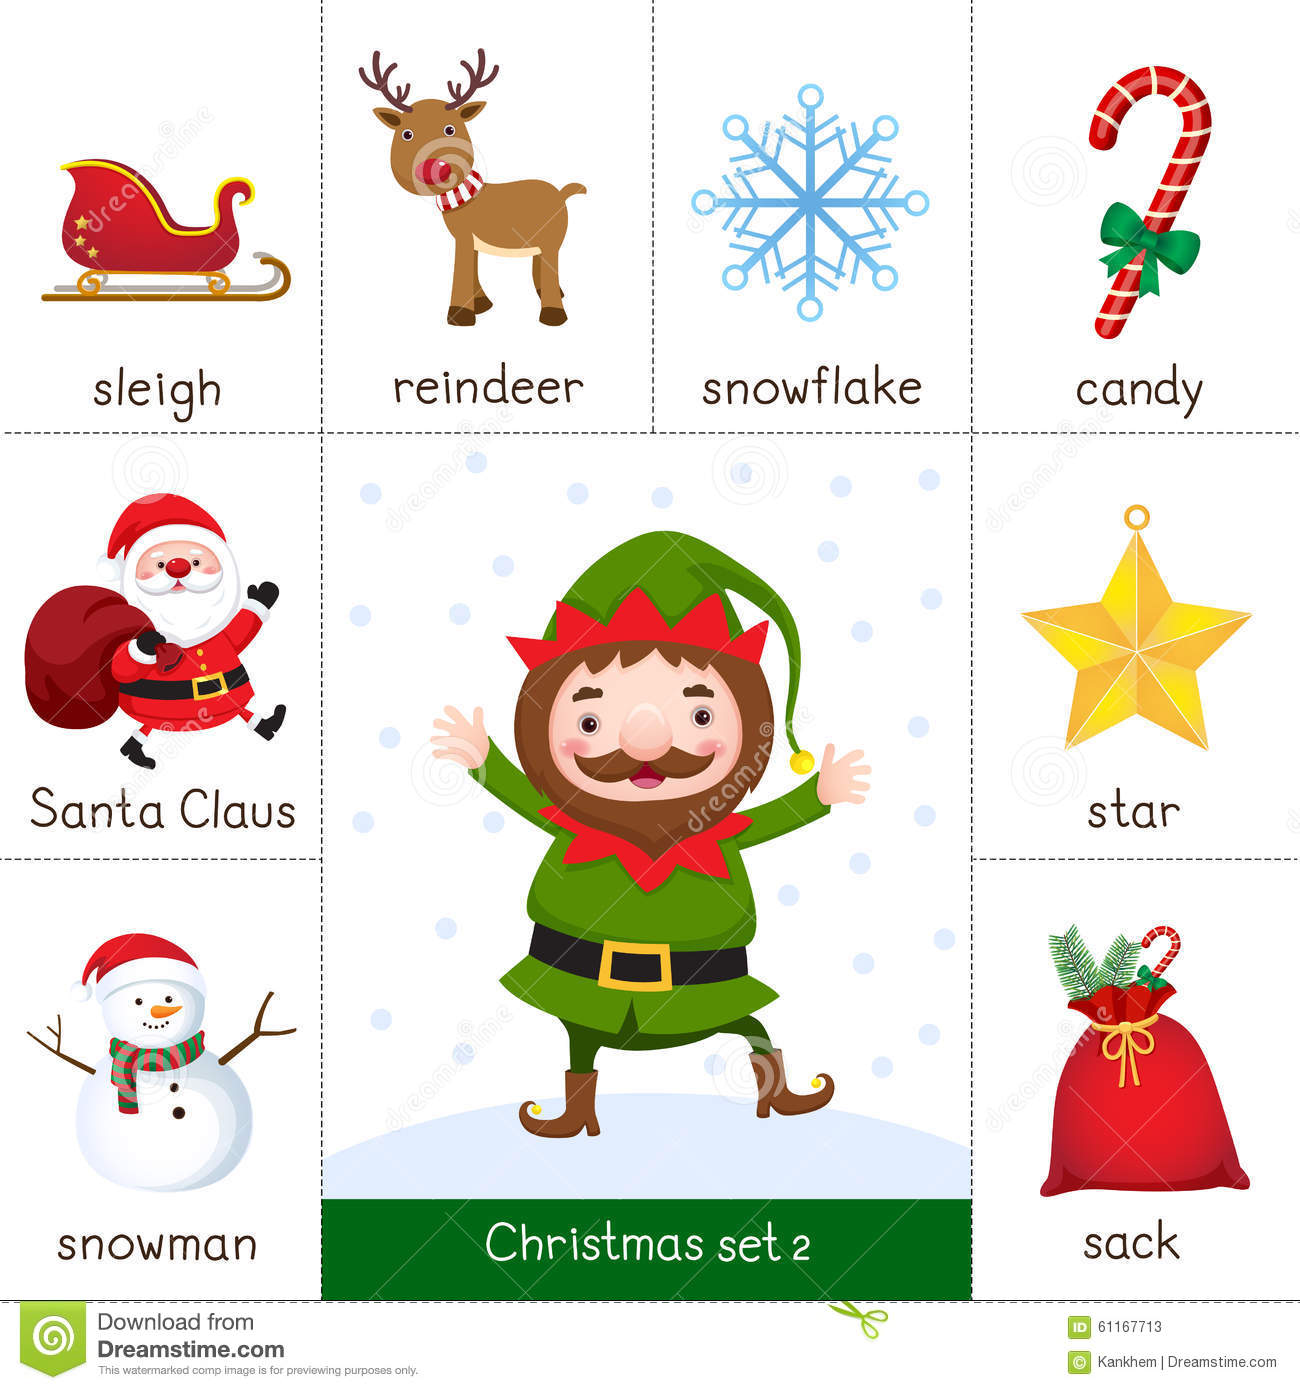 ... For Christmas Set And Christmas Elf Stock Vector - Image: 61167713